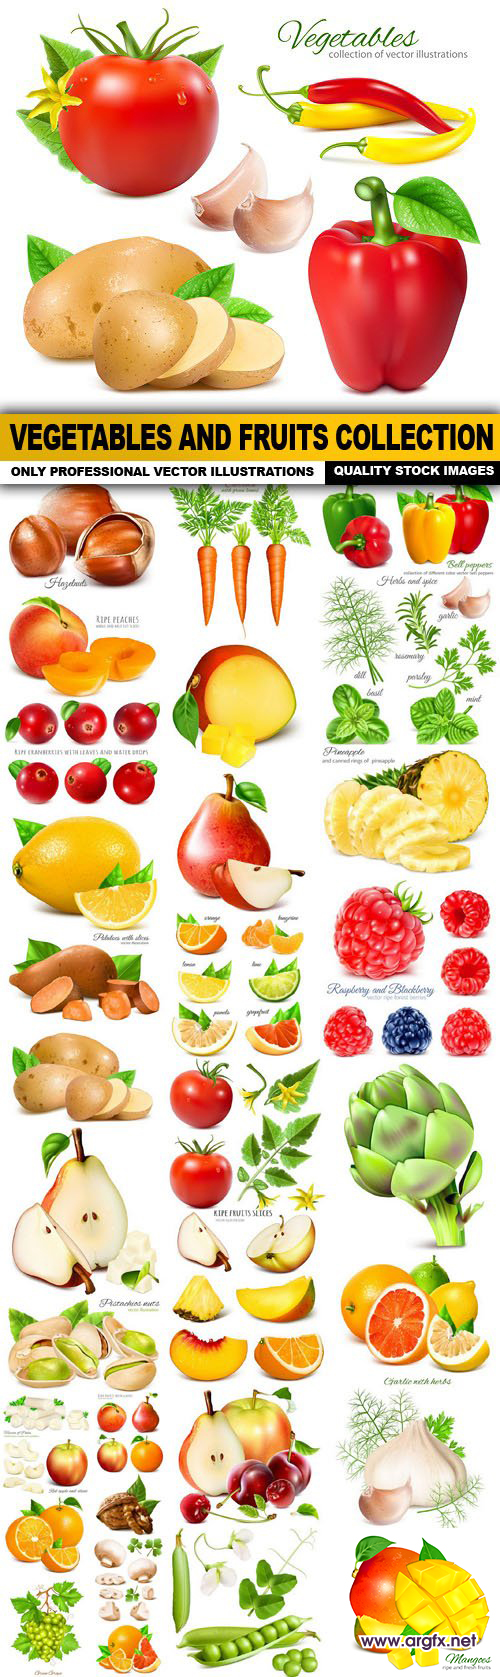 Vegetables And Fruits Collection - 35 Vector